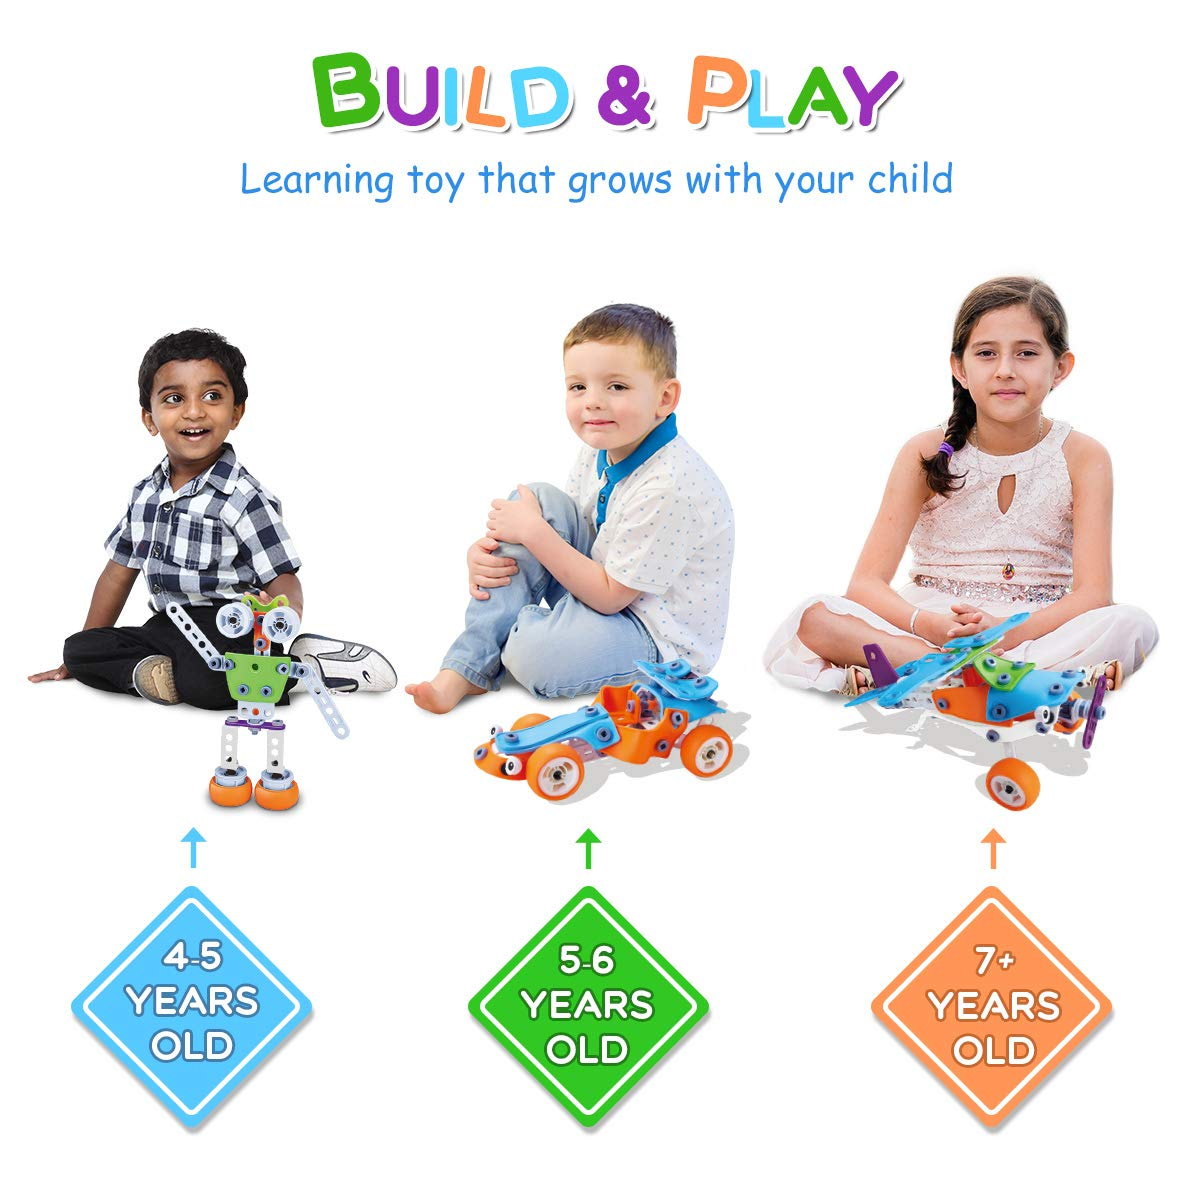 STEM Toys, 189 pcs 6-in-1 Build and Play Toy Set Educational Construction Engineering Building Blocks Learning Kit for Boys and Girls